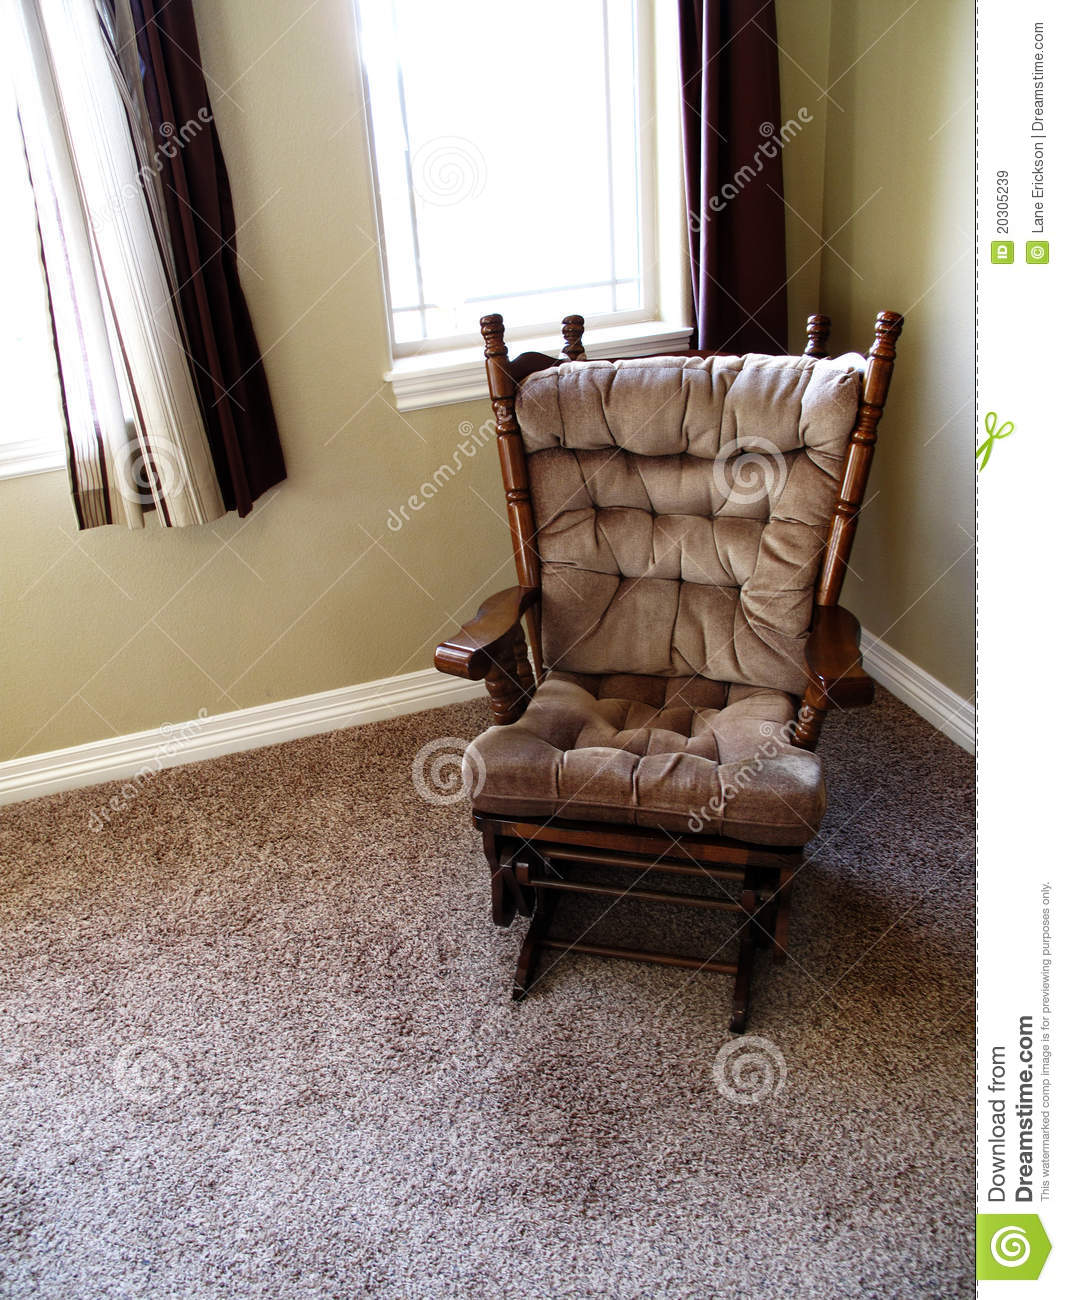 Rocking chair at home royalty free stock images image for Chair next to window